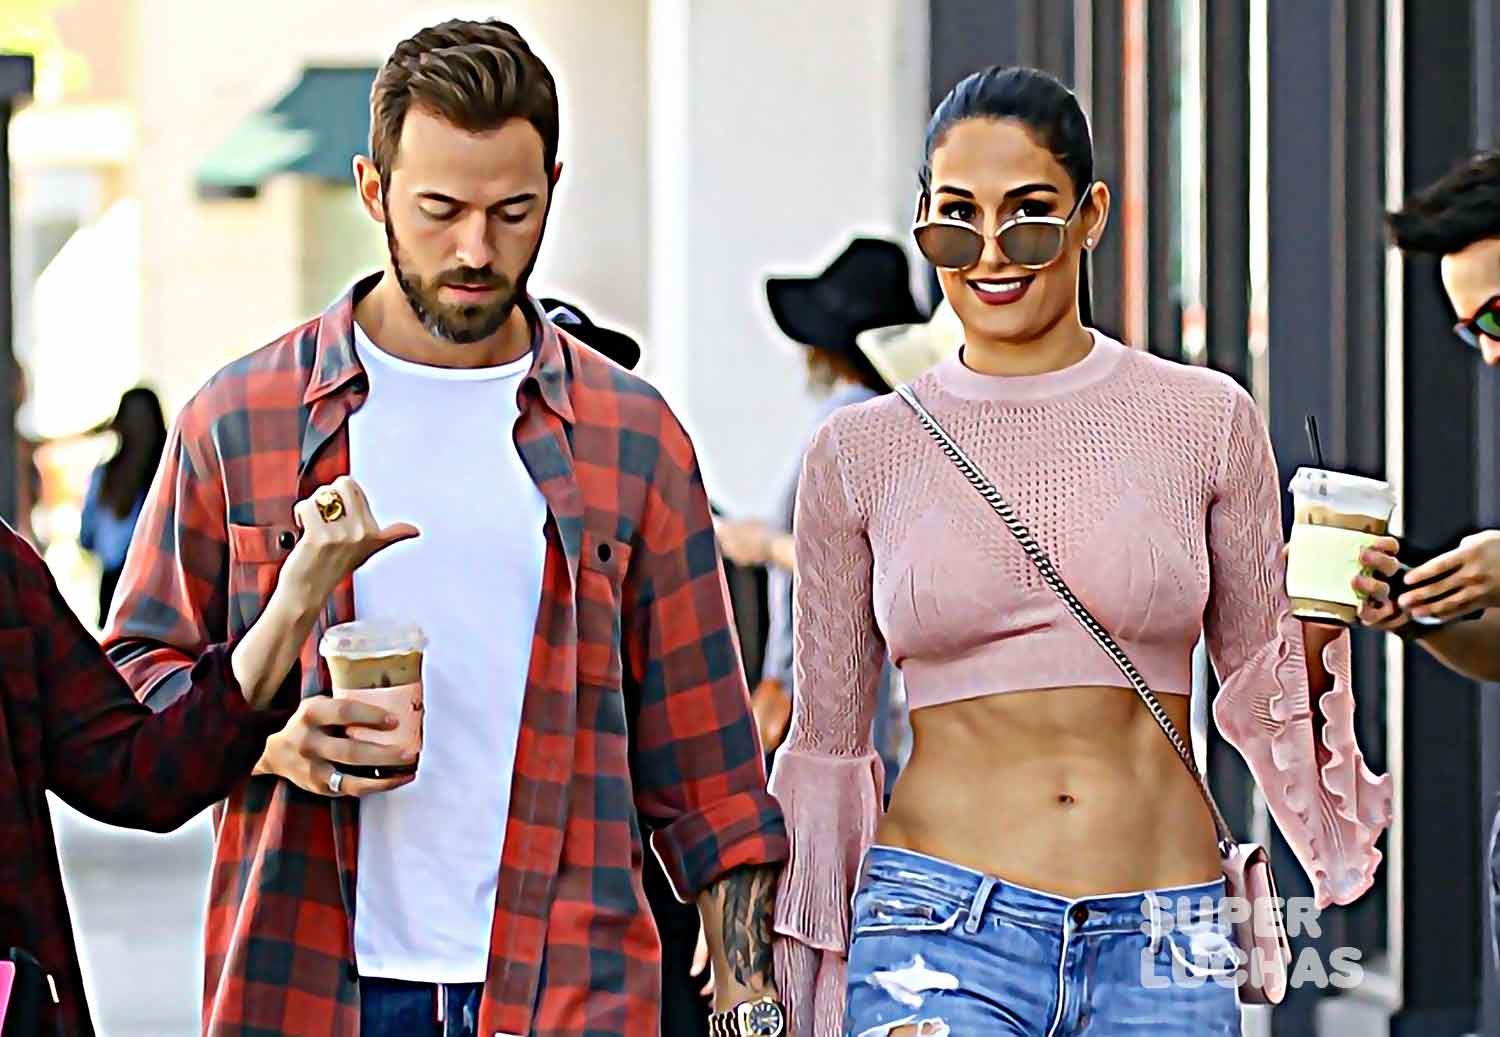 Artem Talks For The First Time About His Relationship With Nikki Bella Superluchas